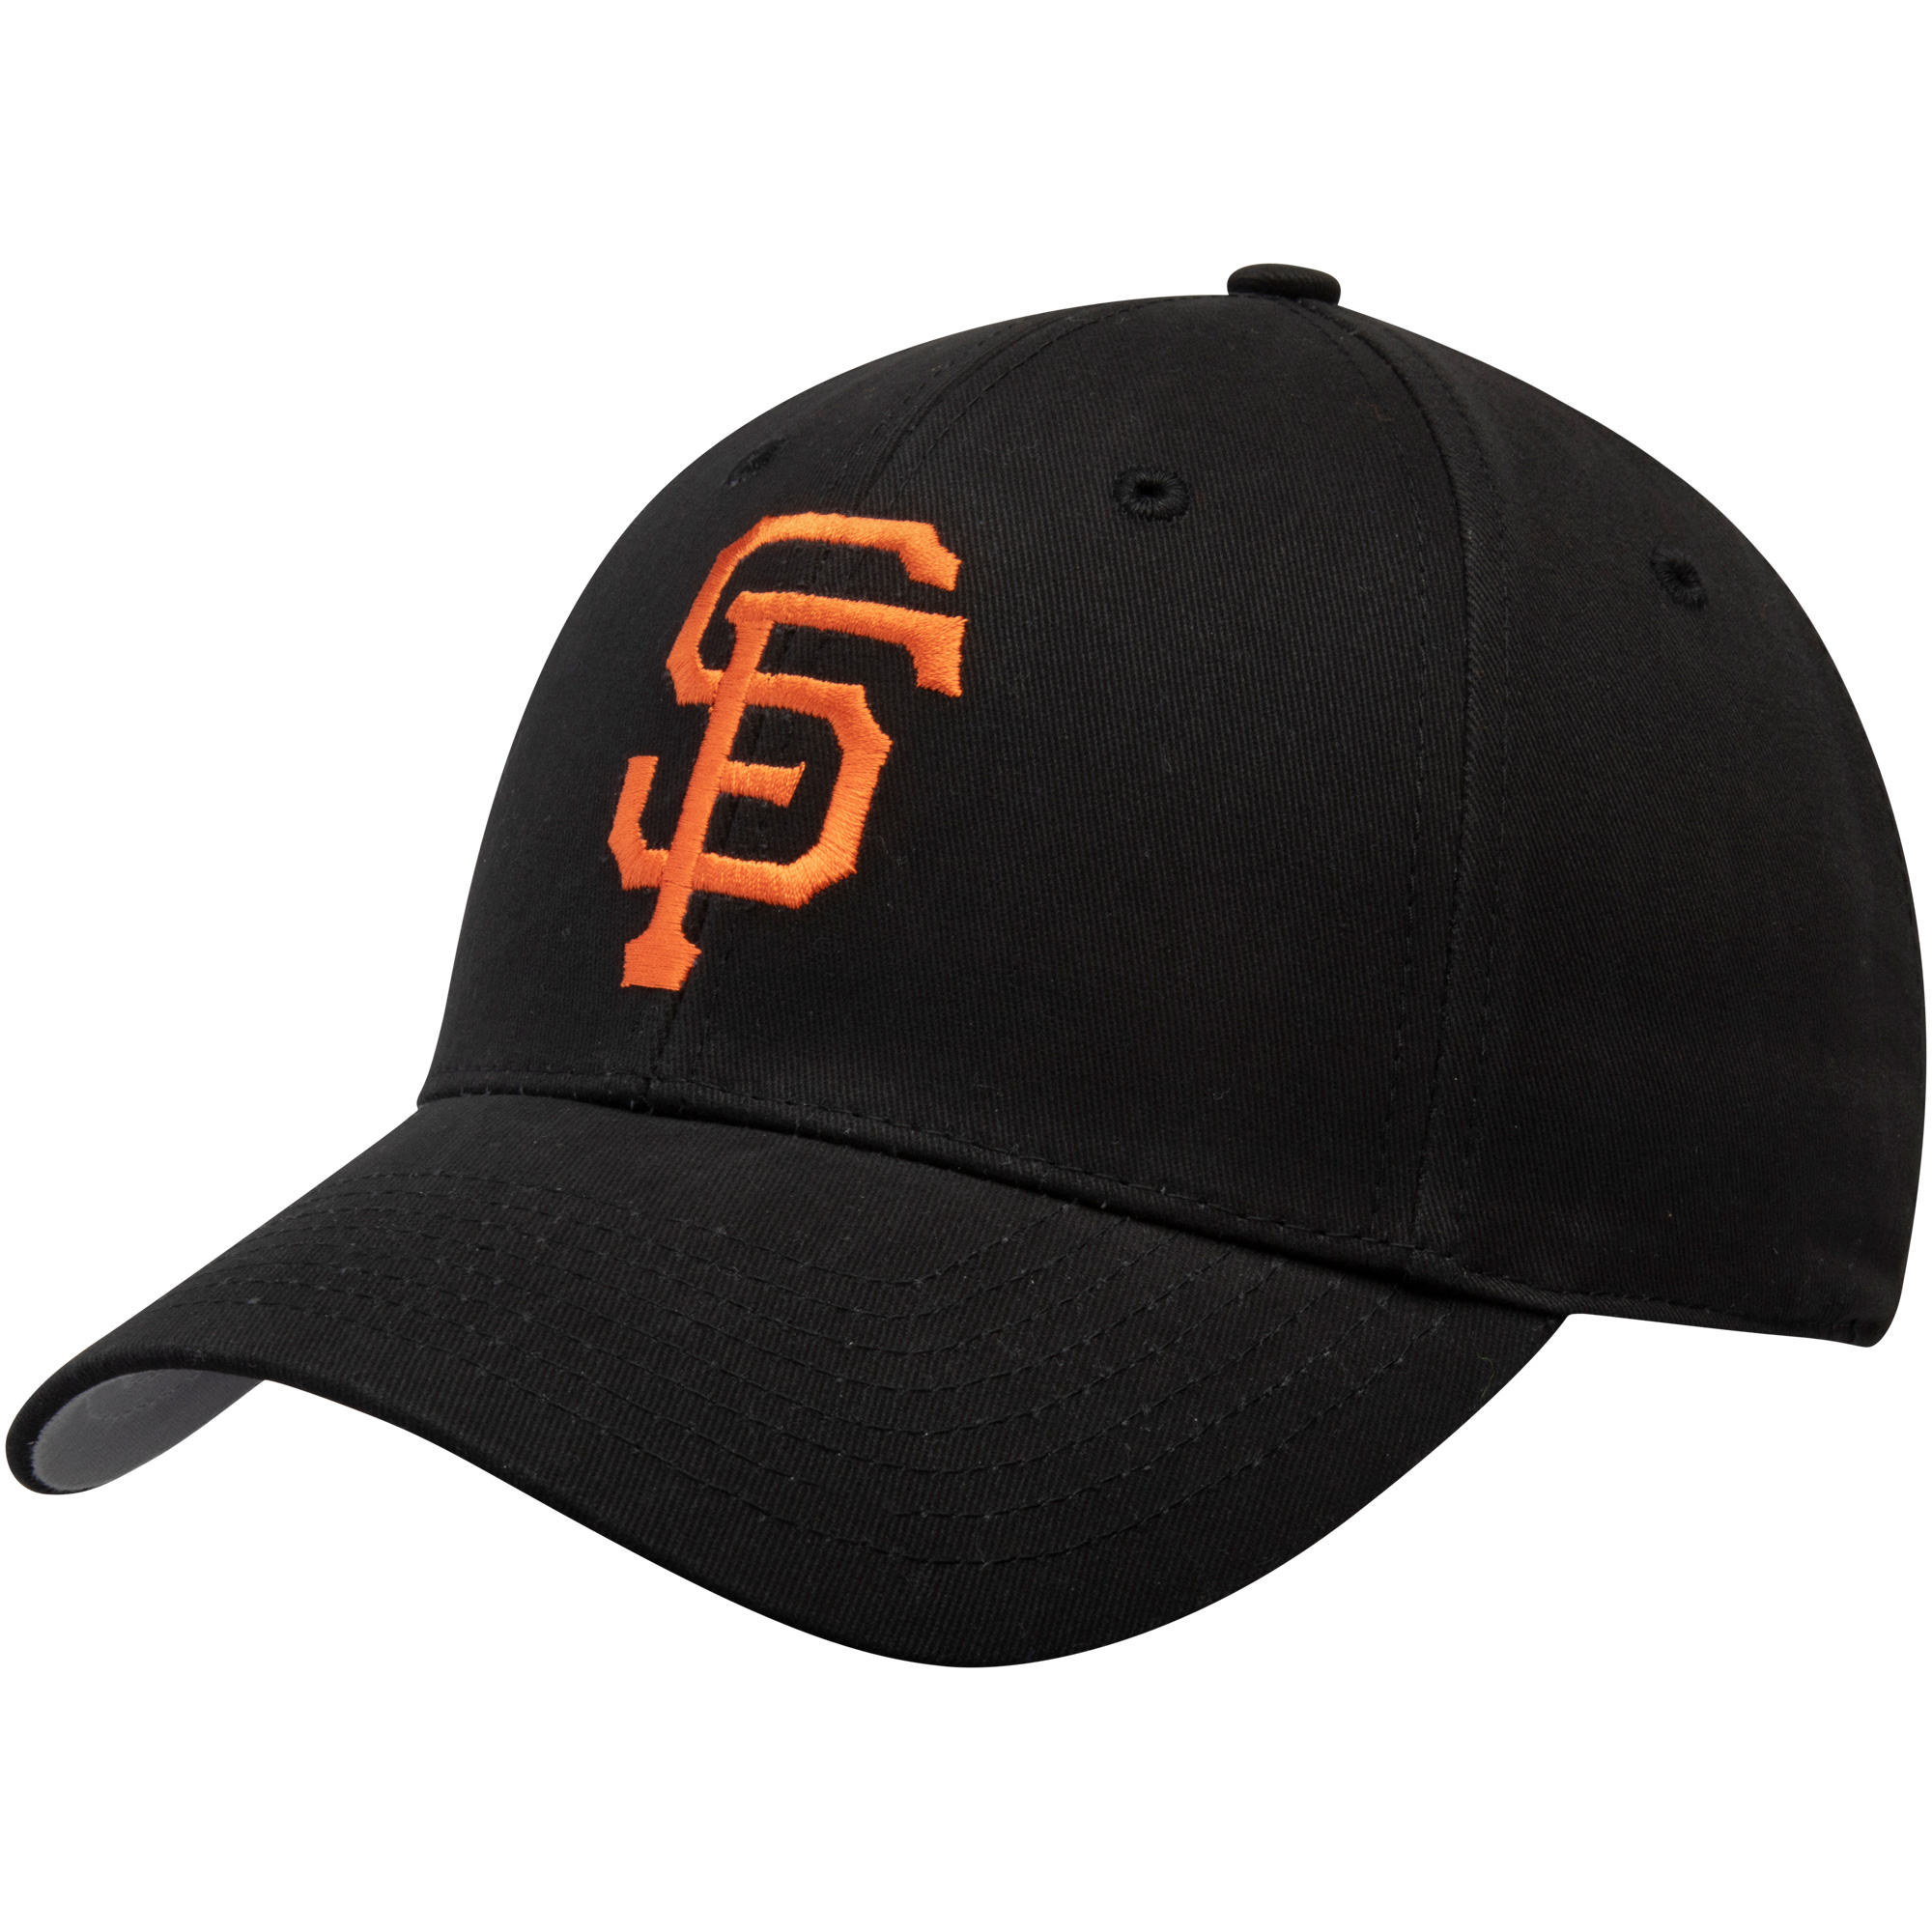 San Francisco Giants Fan Favorite Basic Adjustable Hat - Black - OSFA